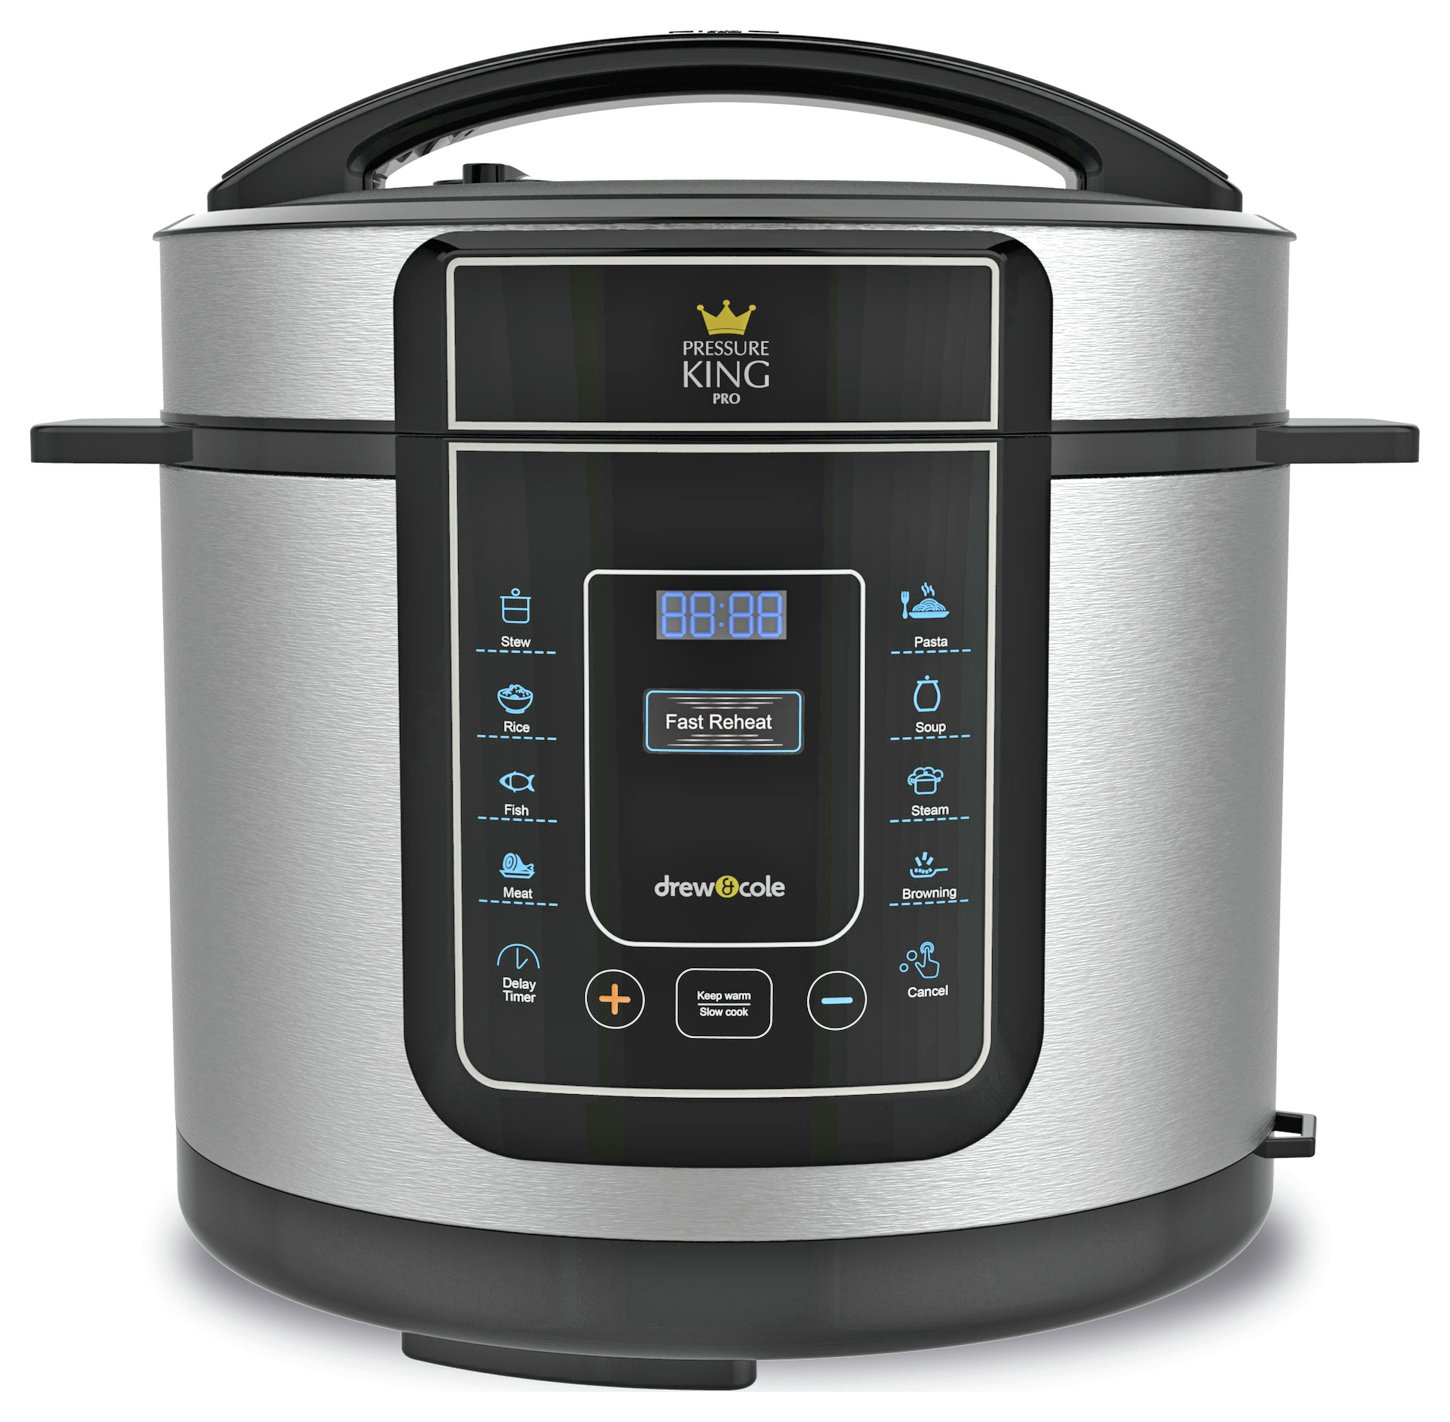 Image of Pressure King Pro - 3 Litre Electric Pressure Cooker - Silver